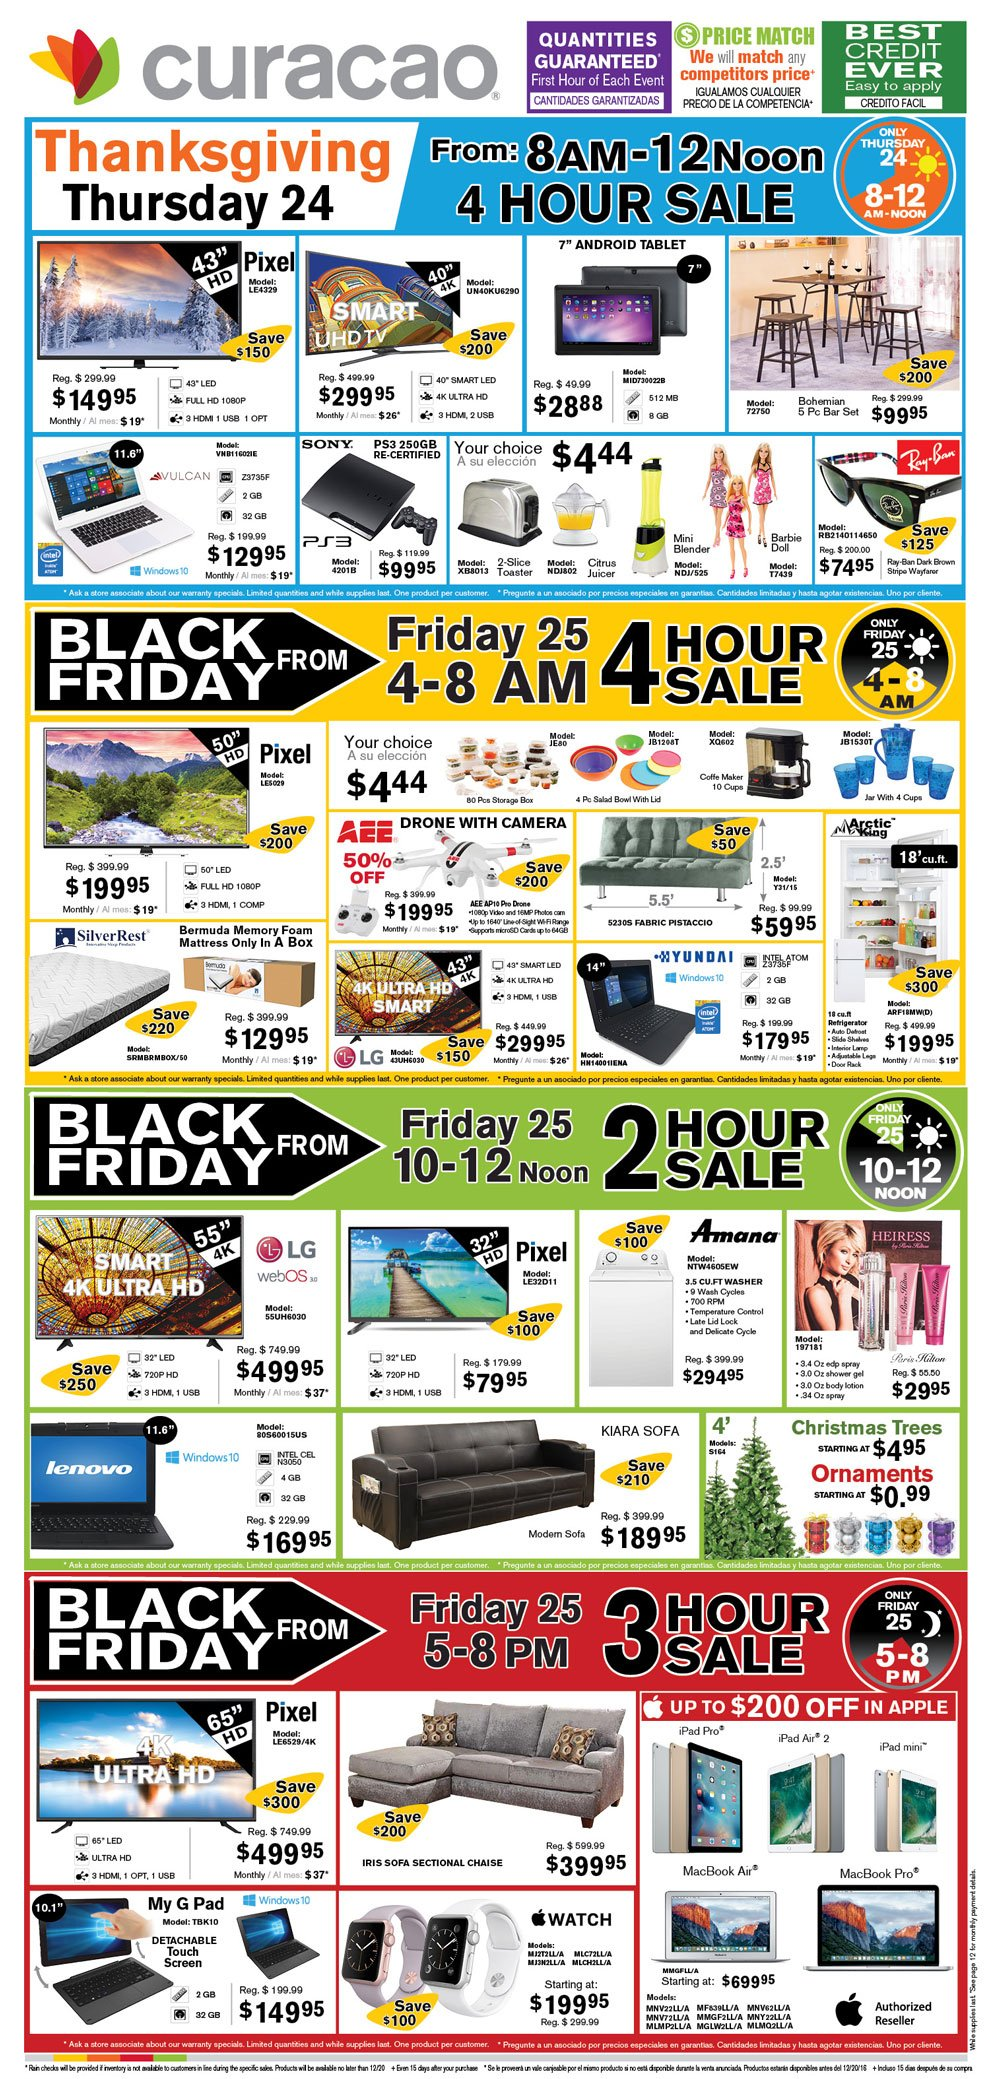 Curacao 2016 Black Friday Ad Page 1